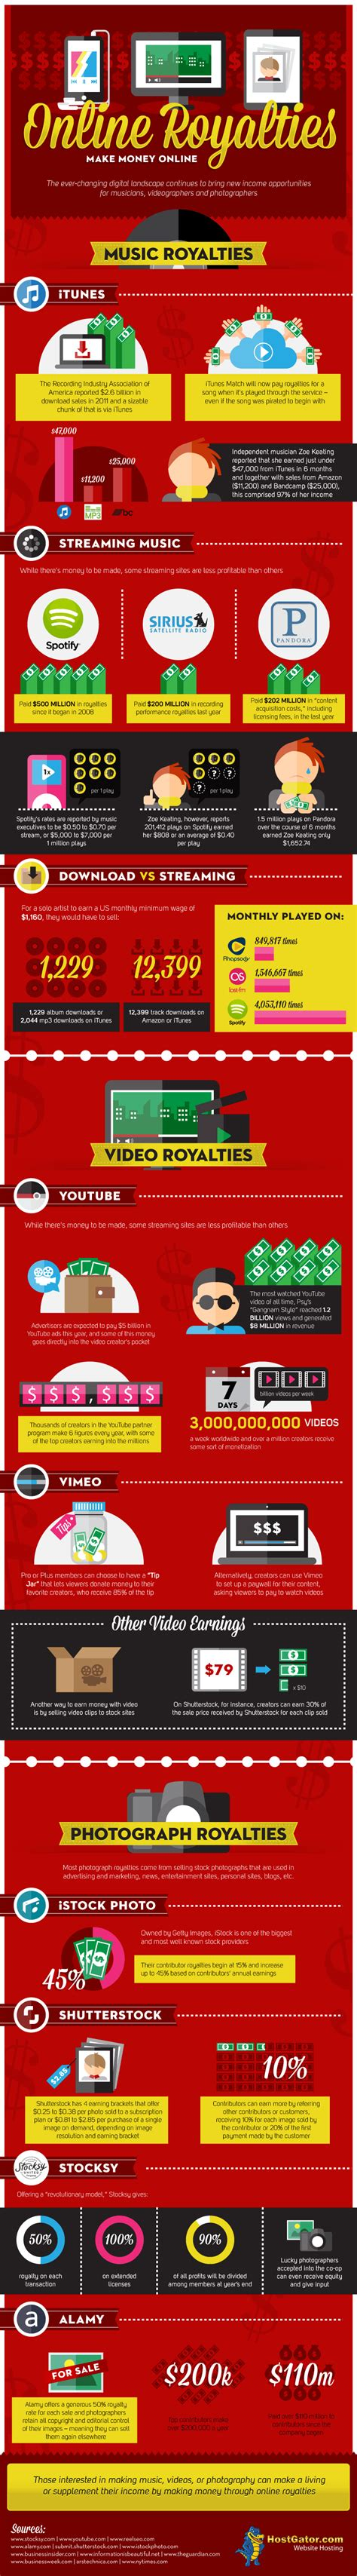 Making Money Online 2014 - infographic online royalties make money online hostgator blog